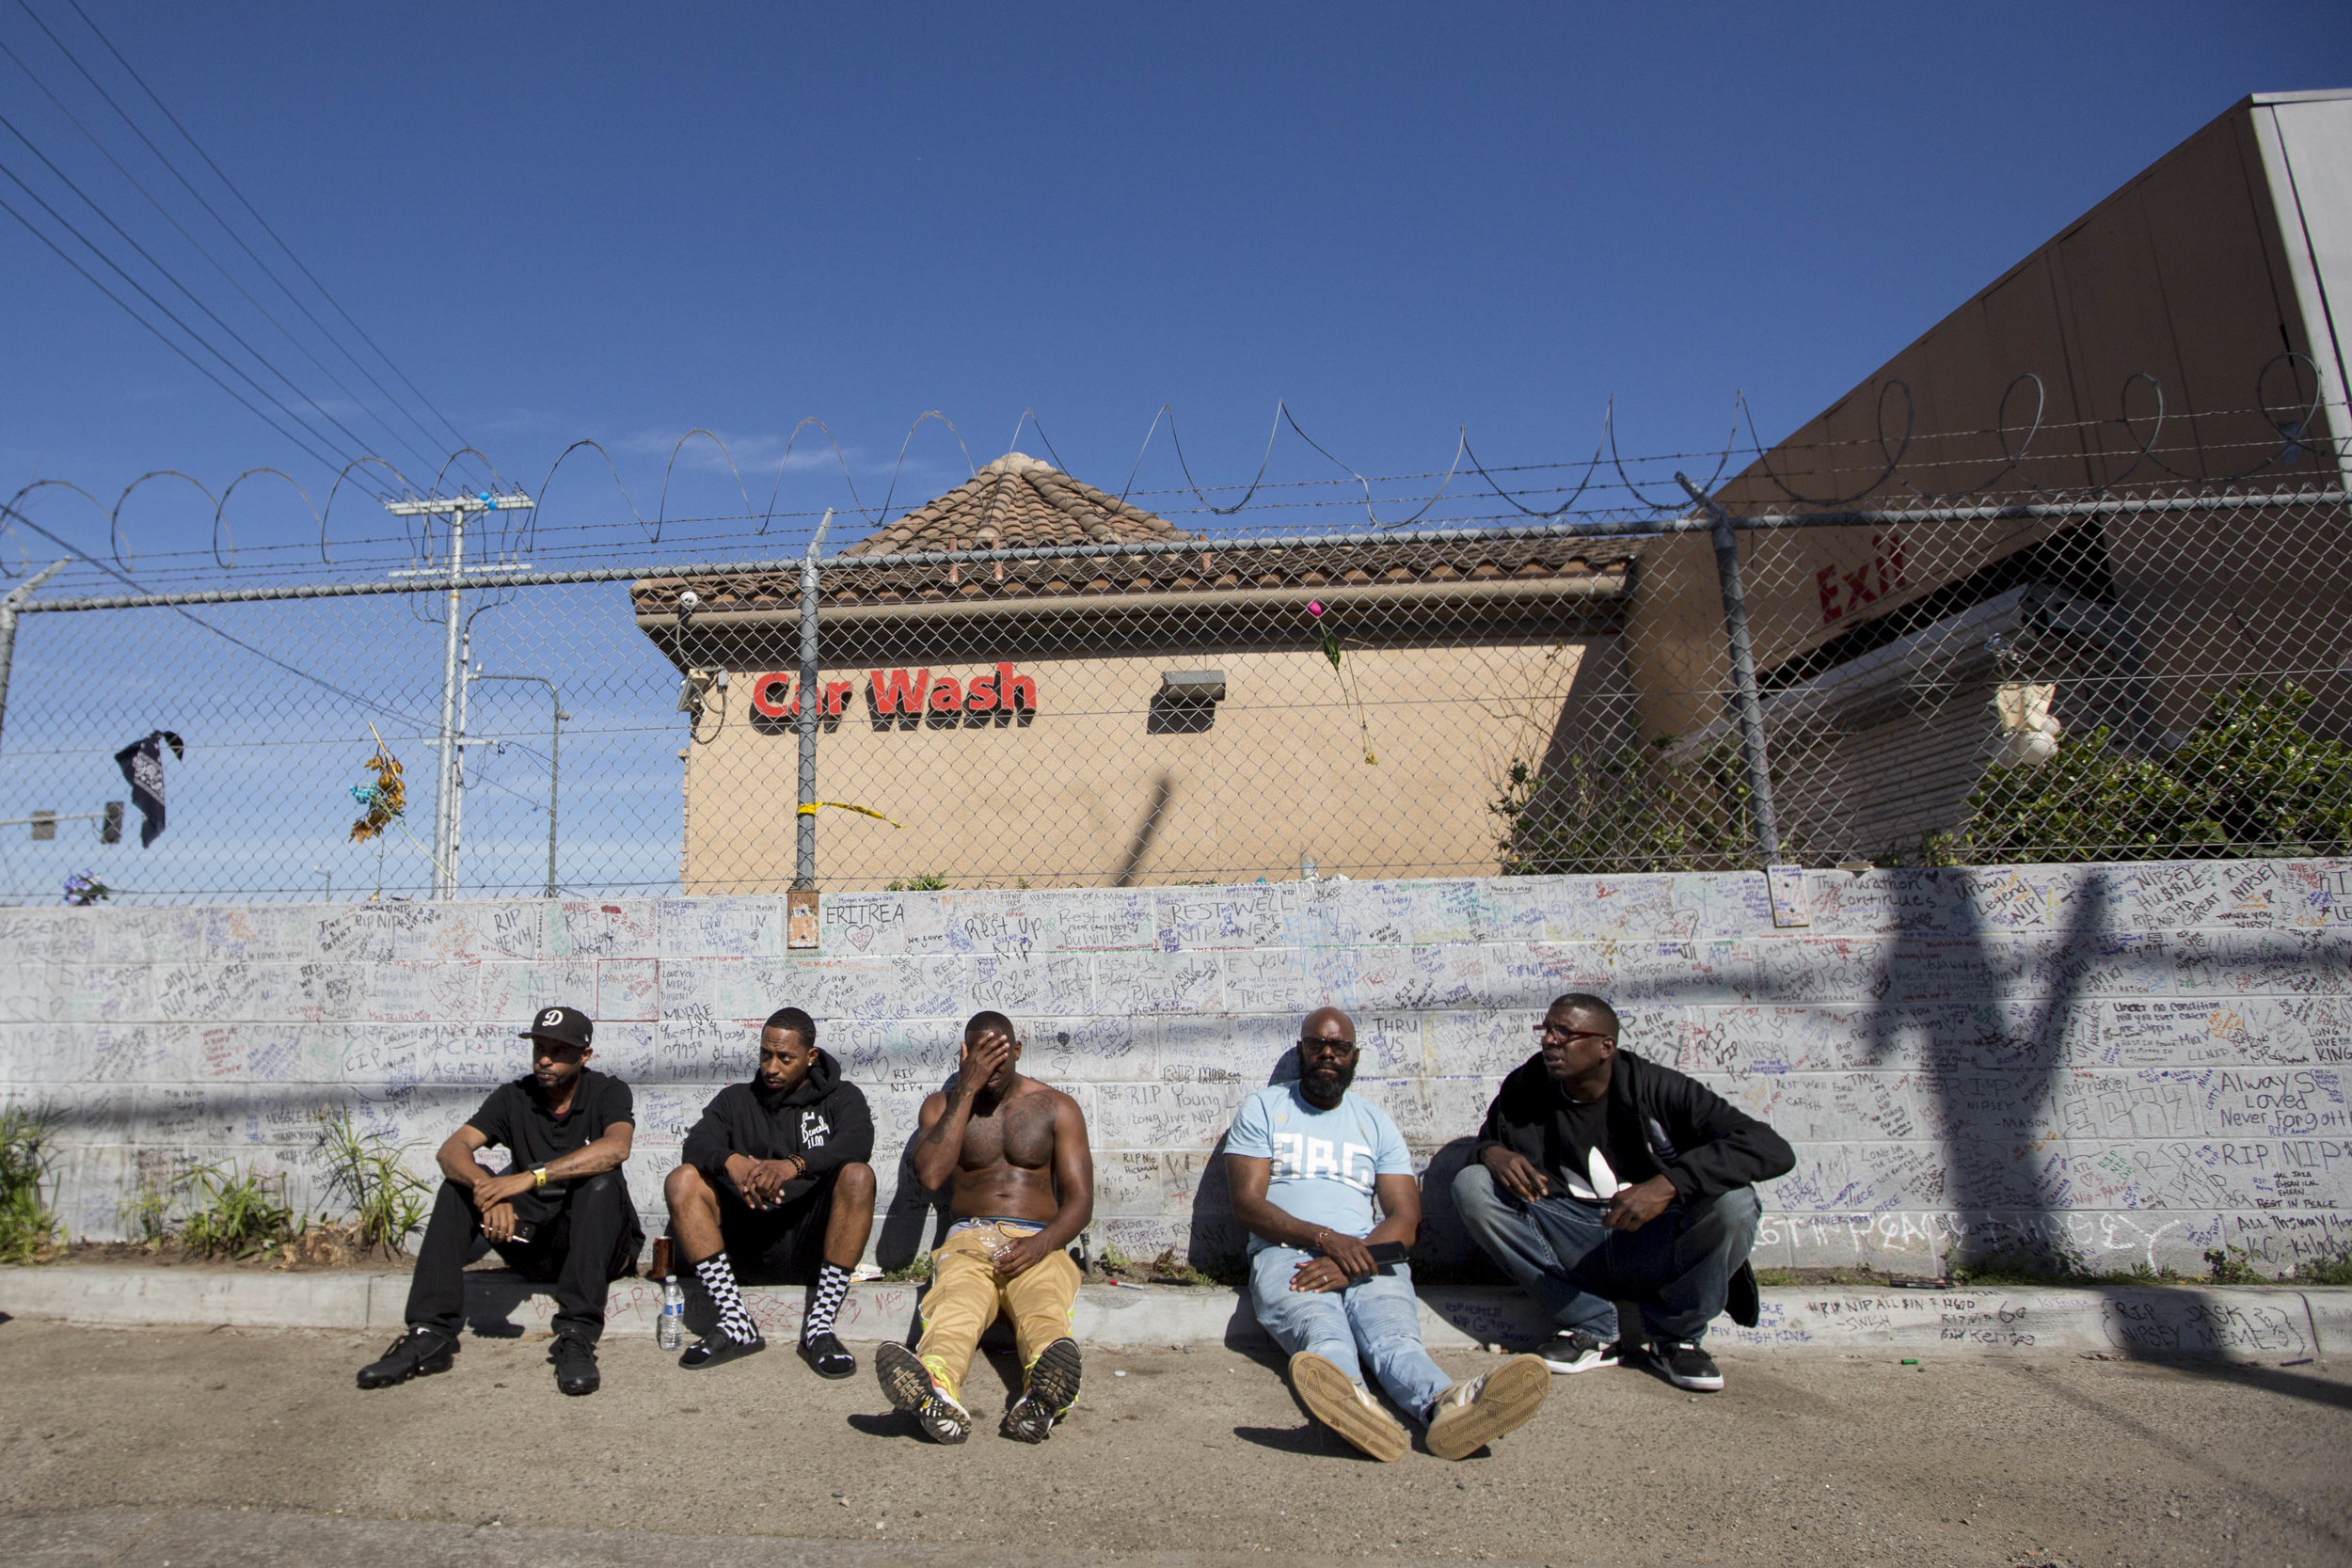 People attending the makeshift memorial for Nipsey Hussle sit back along a wall that is filled with hand written messages commemorating the life of the slain rapper near The Marathon Clothing store on Slauson Avenue in Los Angeles, California on Wednesday, April 6, 2019. The 33-year-old rapper was murdered on March 31 in front of The Marathon Clothing store which he owned. (Jose Lopez)